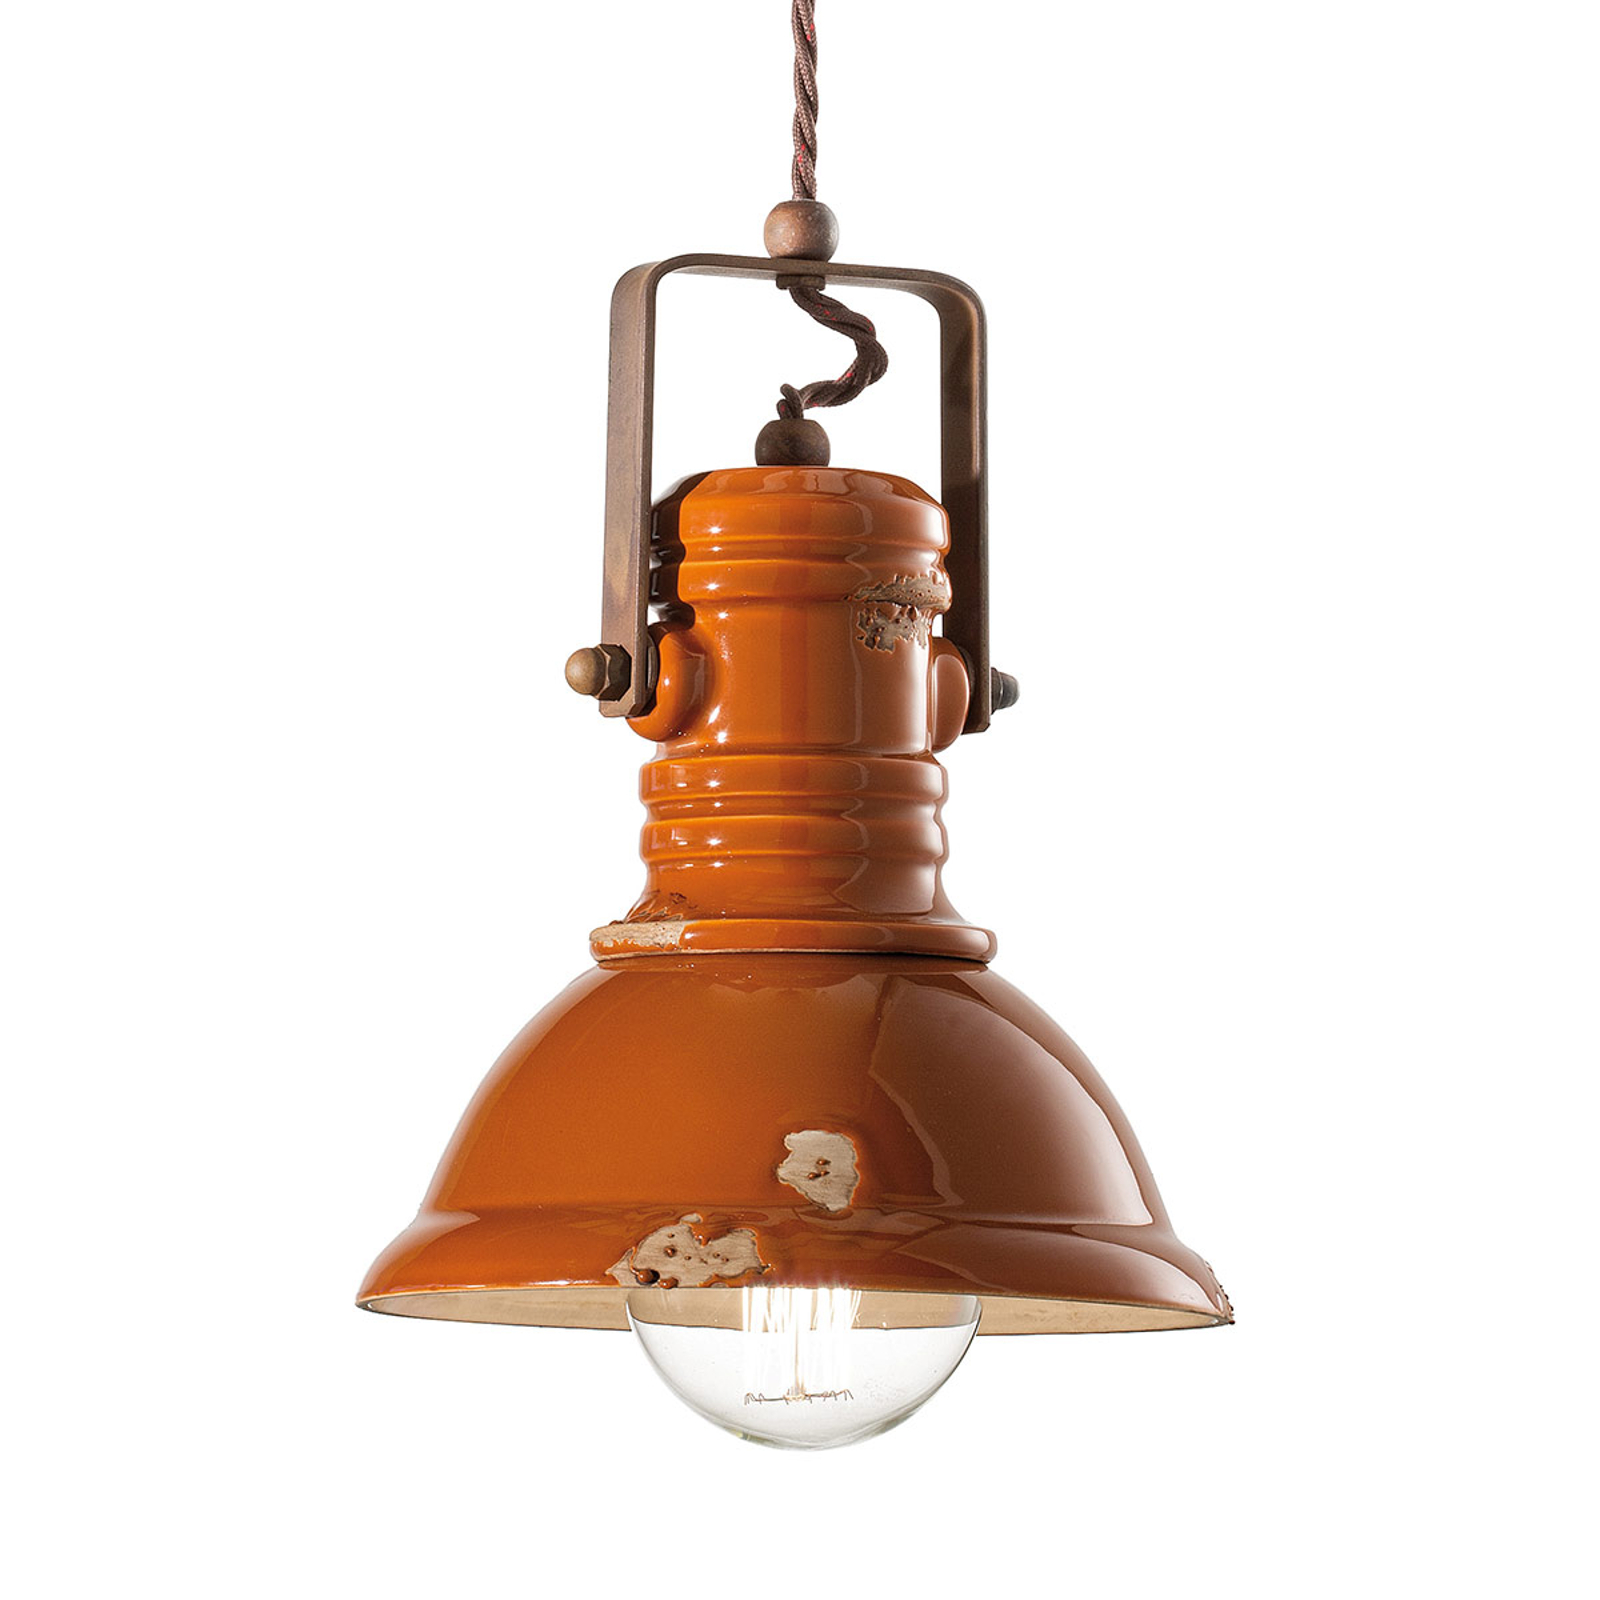 Hanglamp C1691 in industrieel design oranje